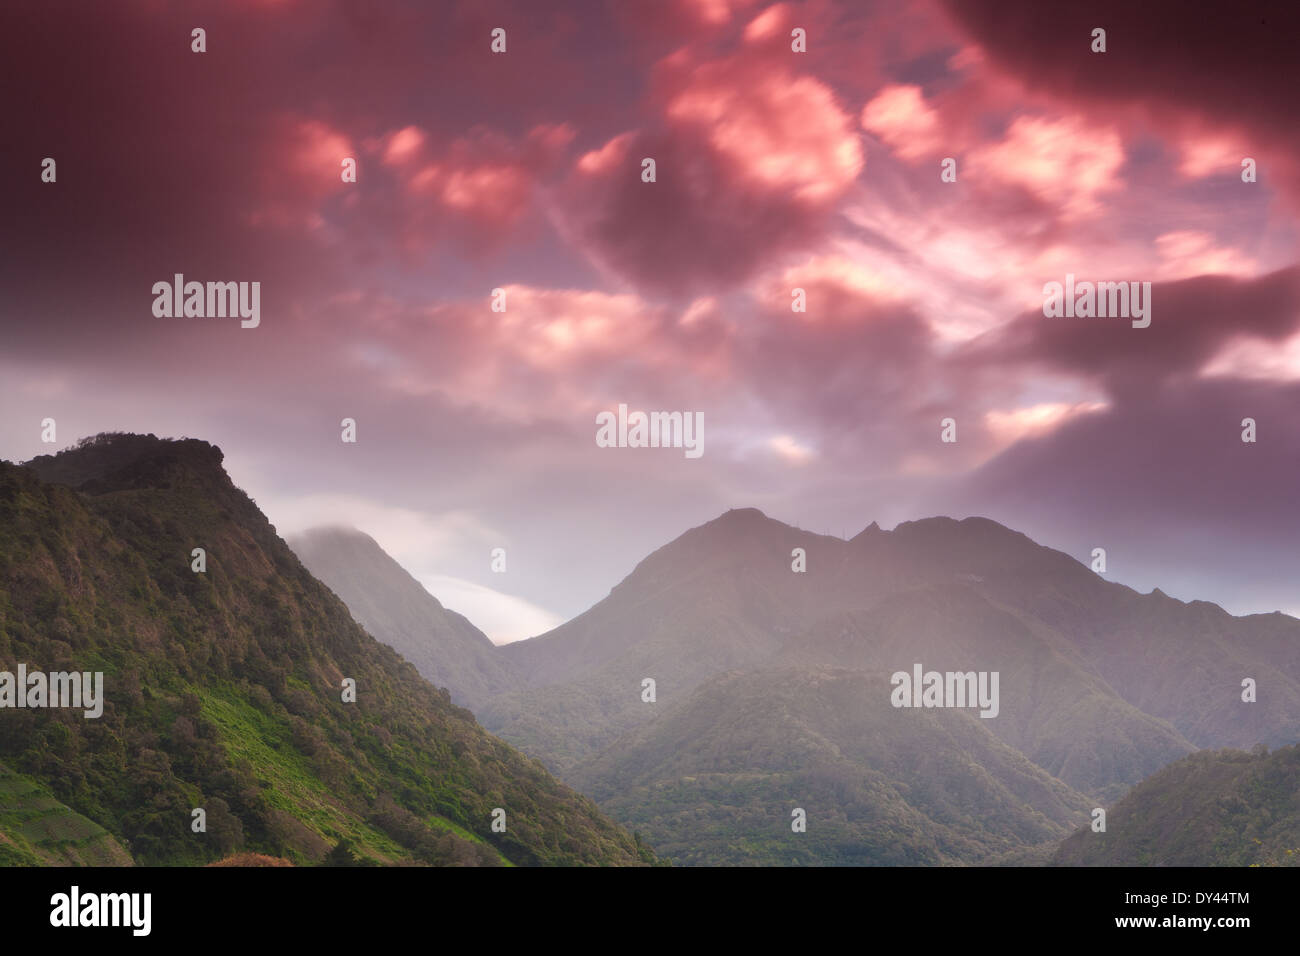 Colorful skies at sunrise and rainfall over Volcan Baru, 3475 m, in the Volcan Baru national park, Chiriqui province, Republic of Panama. - Stock Image